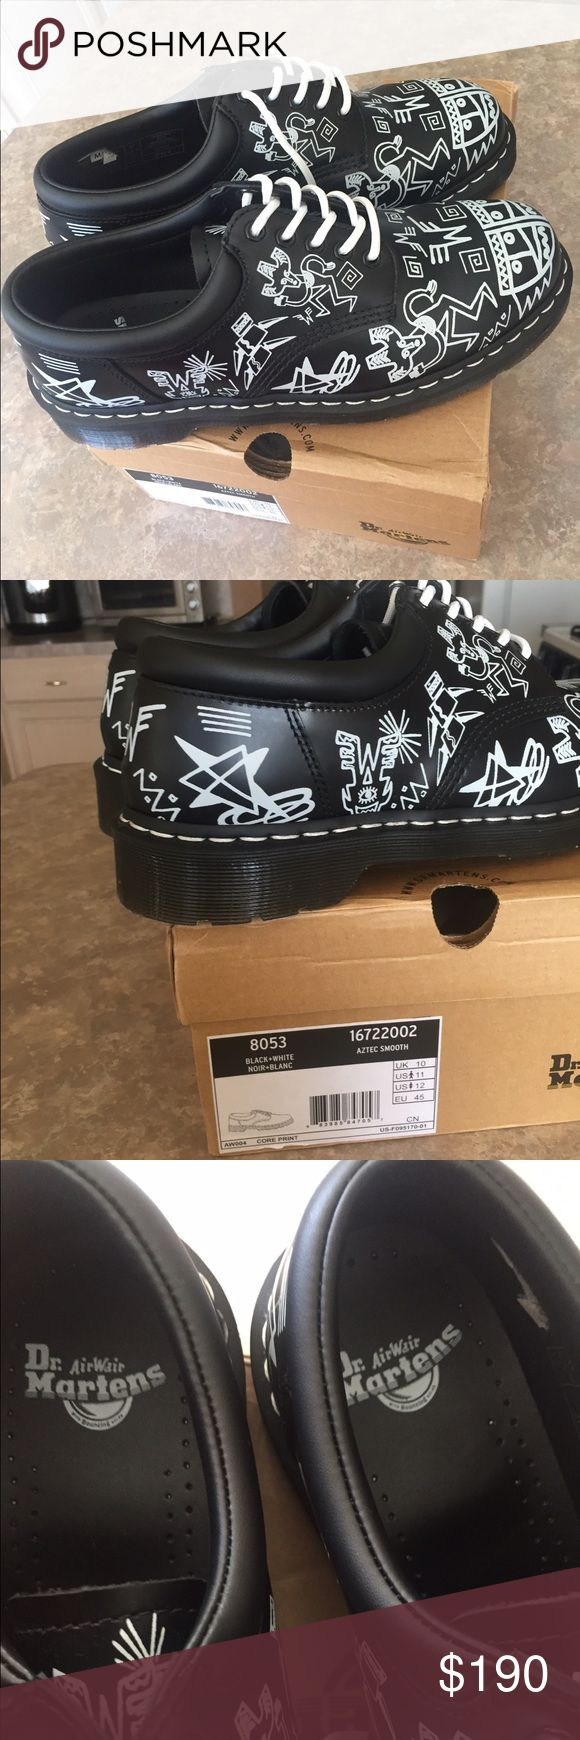 Dr. Martens Aztec 8053 Brand new ... Never worn .. Size 11 ... Sold out everywhere dr martens Aztec ... feel free to ask questions Dr. Martens Shoes Oxfords & Derbys